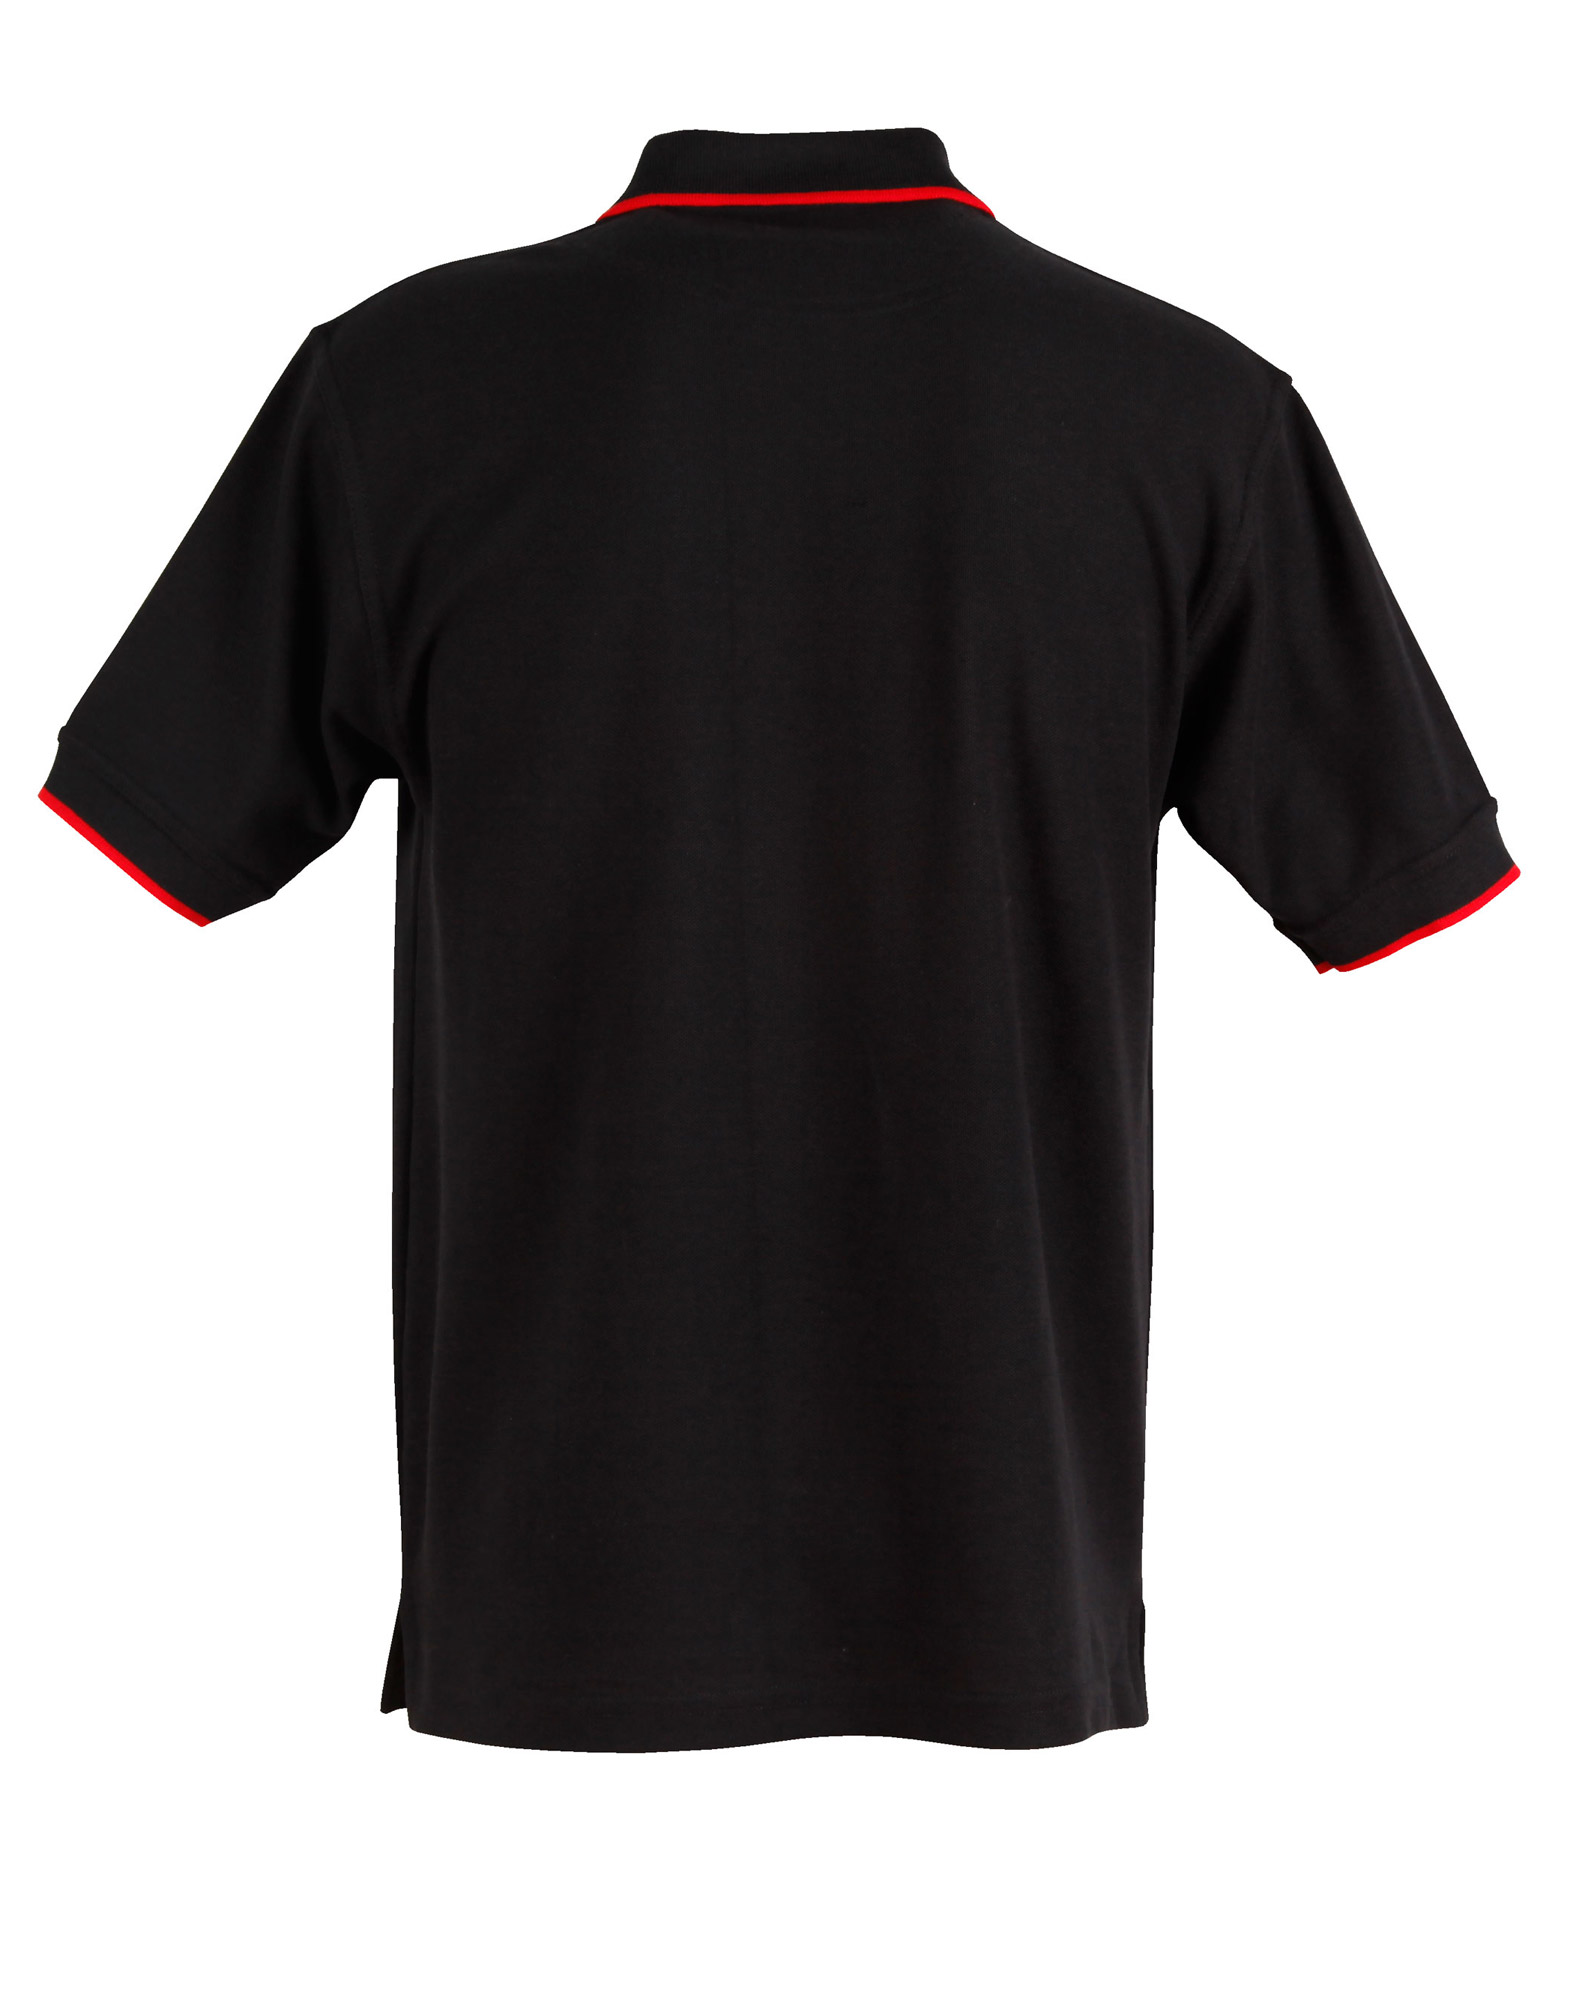 https://s3-ap-southeast-1.amazonaws.com/ws-imgs/POLOSHIRTS/PS08_BlackRed_Back_l.jpg